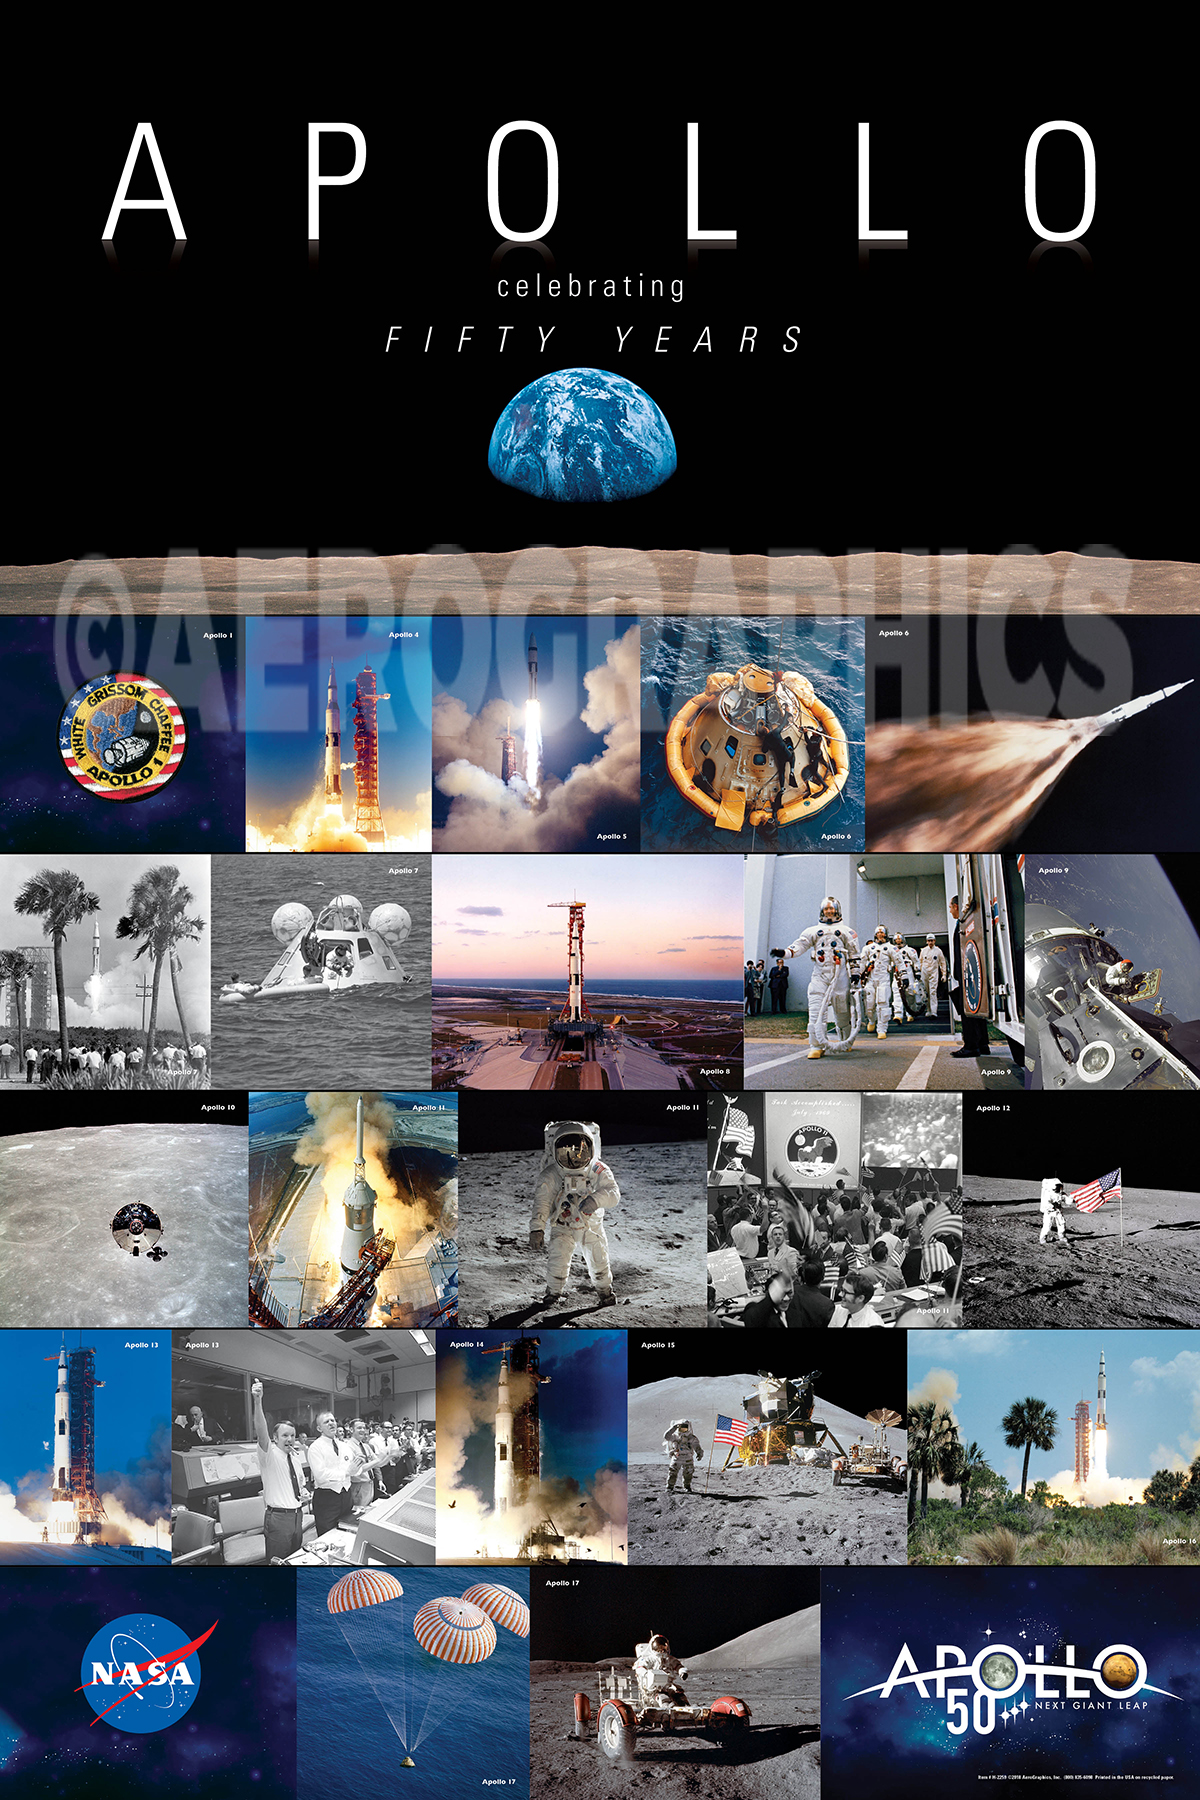 Apollo 11 50 Years poster H-2259